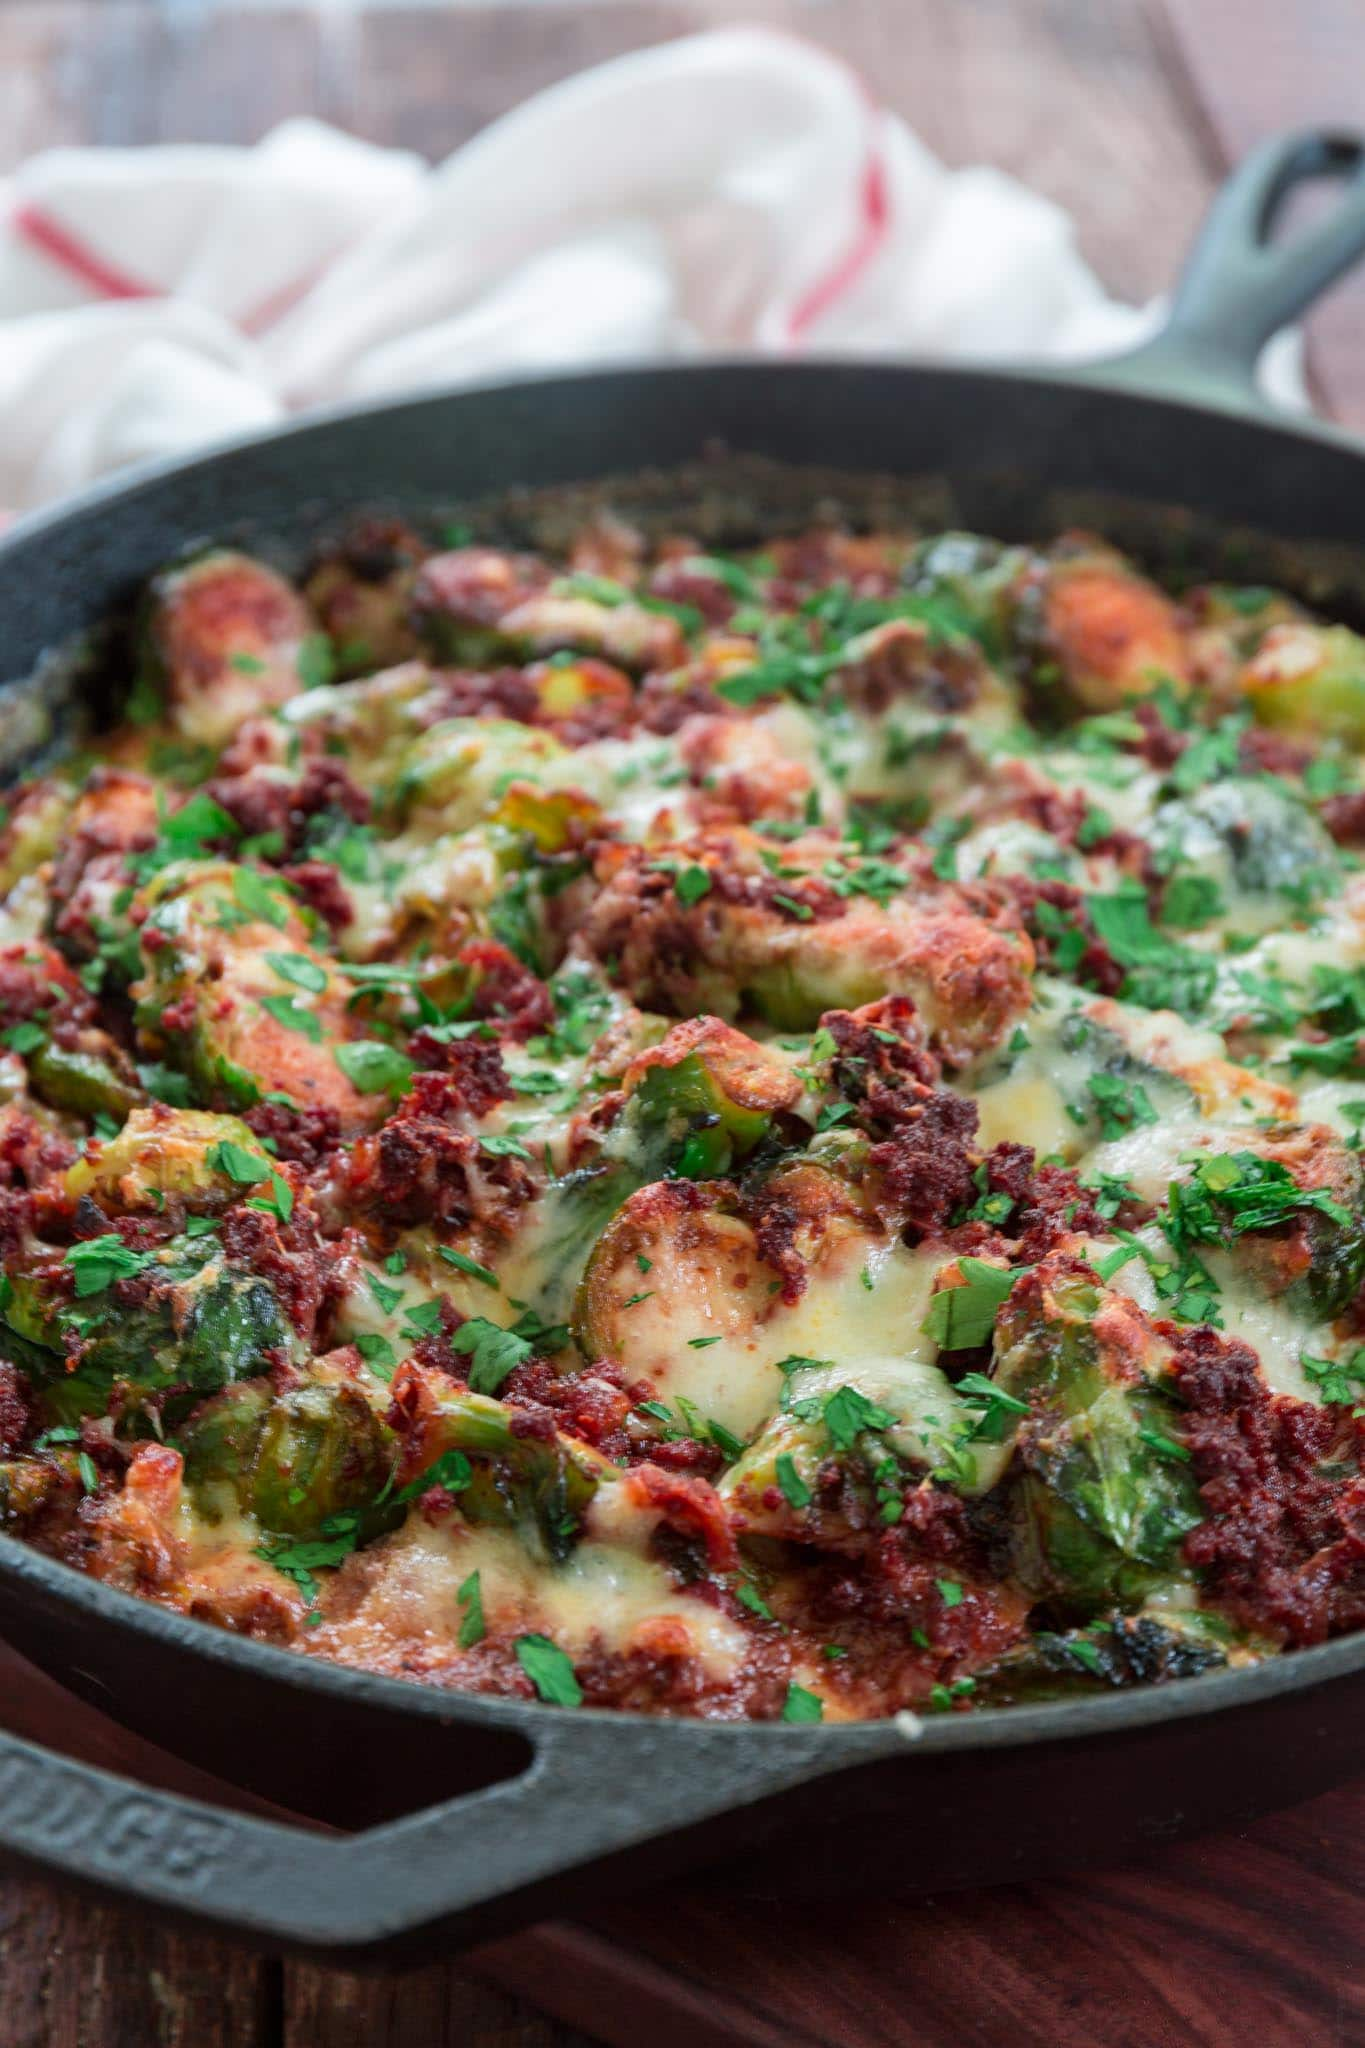 Cheesy Brussels Sprouts with Chorizo | www.oliviascuisine.com | Even the pickiest eaters will love these cheesy Brussels sprouts, caramelized to perfection and topped with spicy chorizo and a whole lot of Manchego cheese. Believe me, those nasty boiled Brussels sprouts that you used to eat as a child have nothing on this unbelievably delicious gourmet side dish! (Recipe and food photography by @oliviascuisine.)